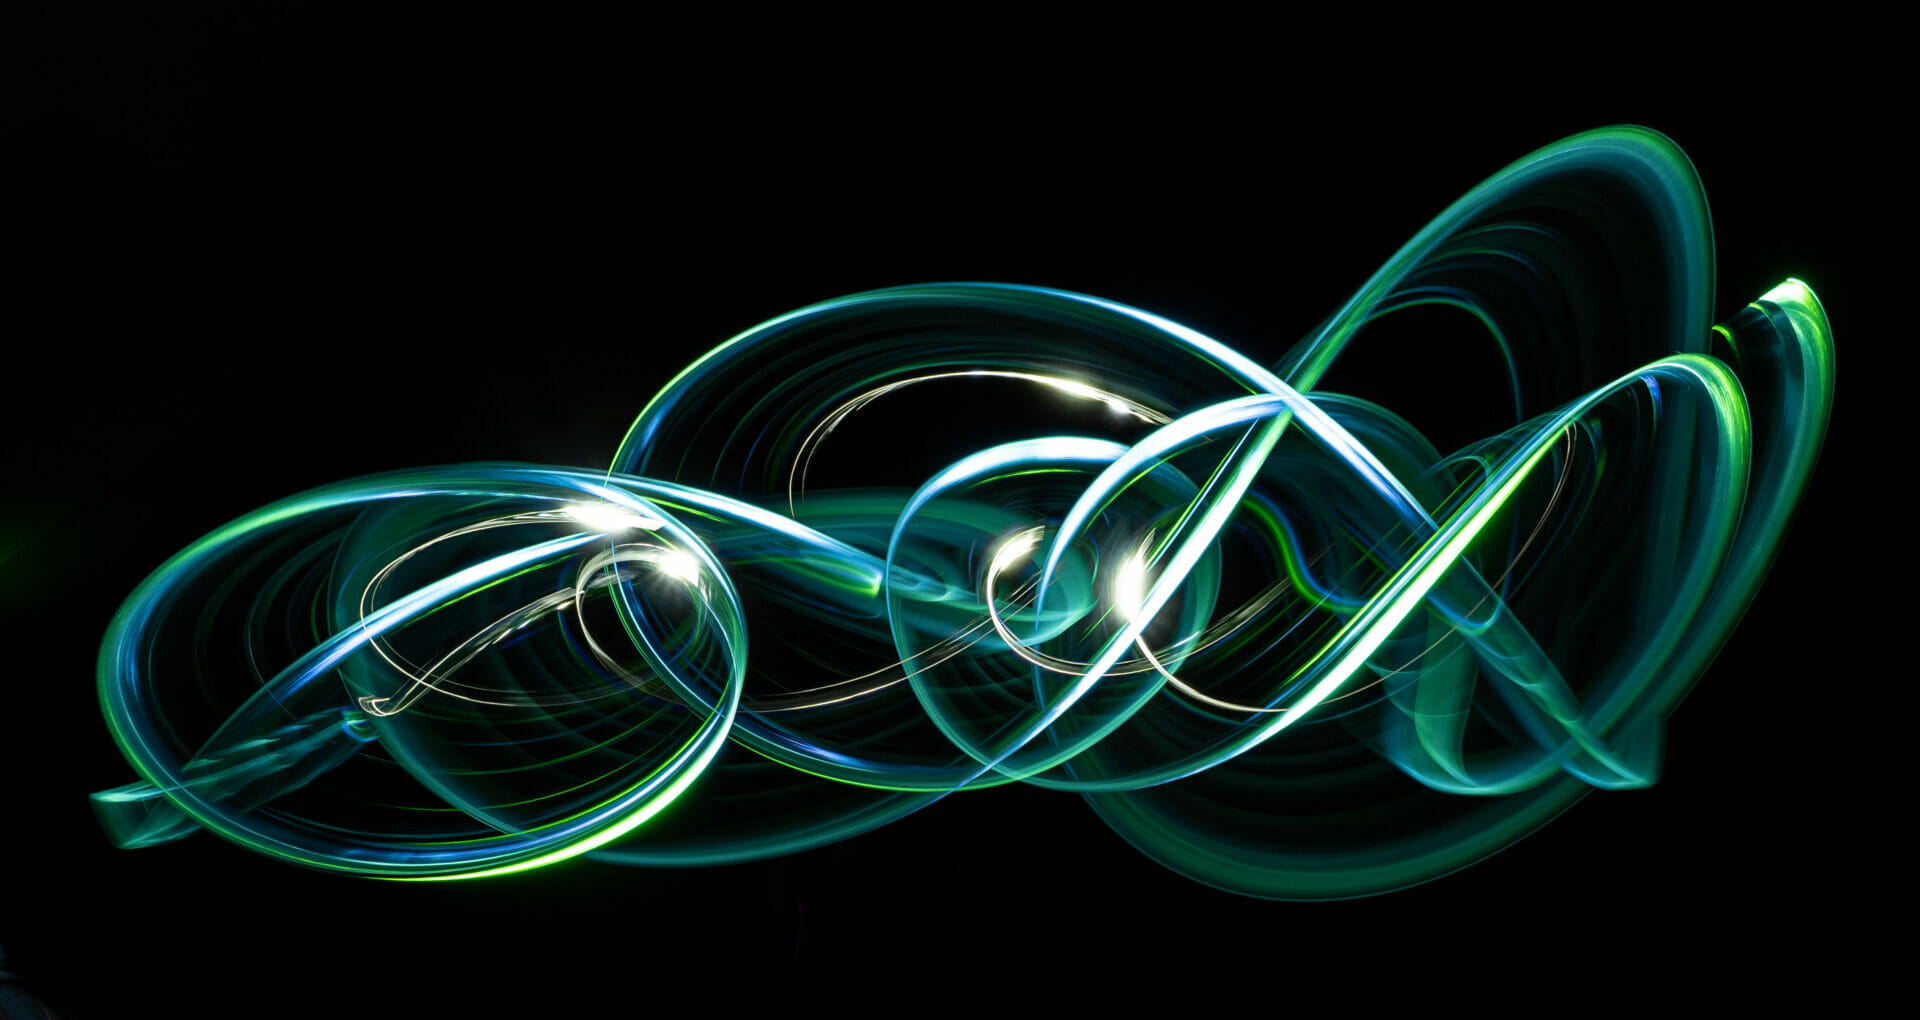 Photo made by waving a green light around in the dark to showcase the techniques for Long Exposure Photography - Light Painting Techniques - Chester Academy Evening